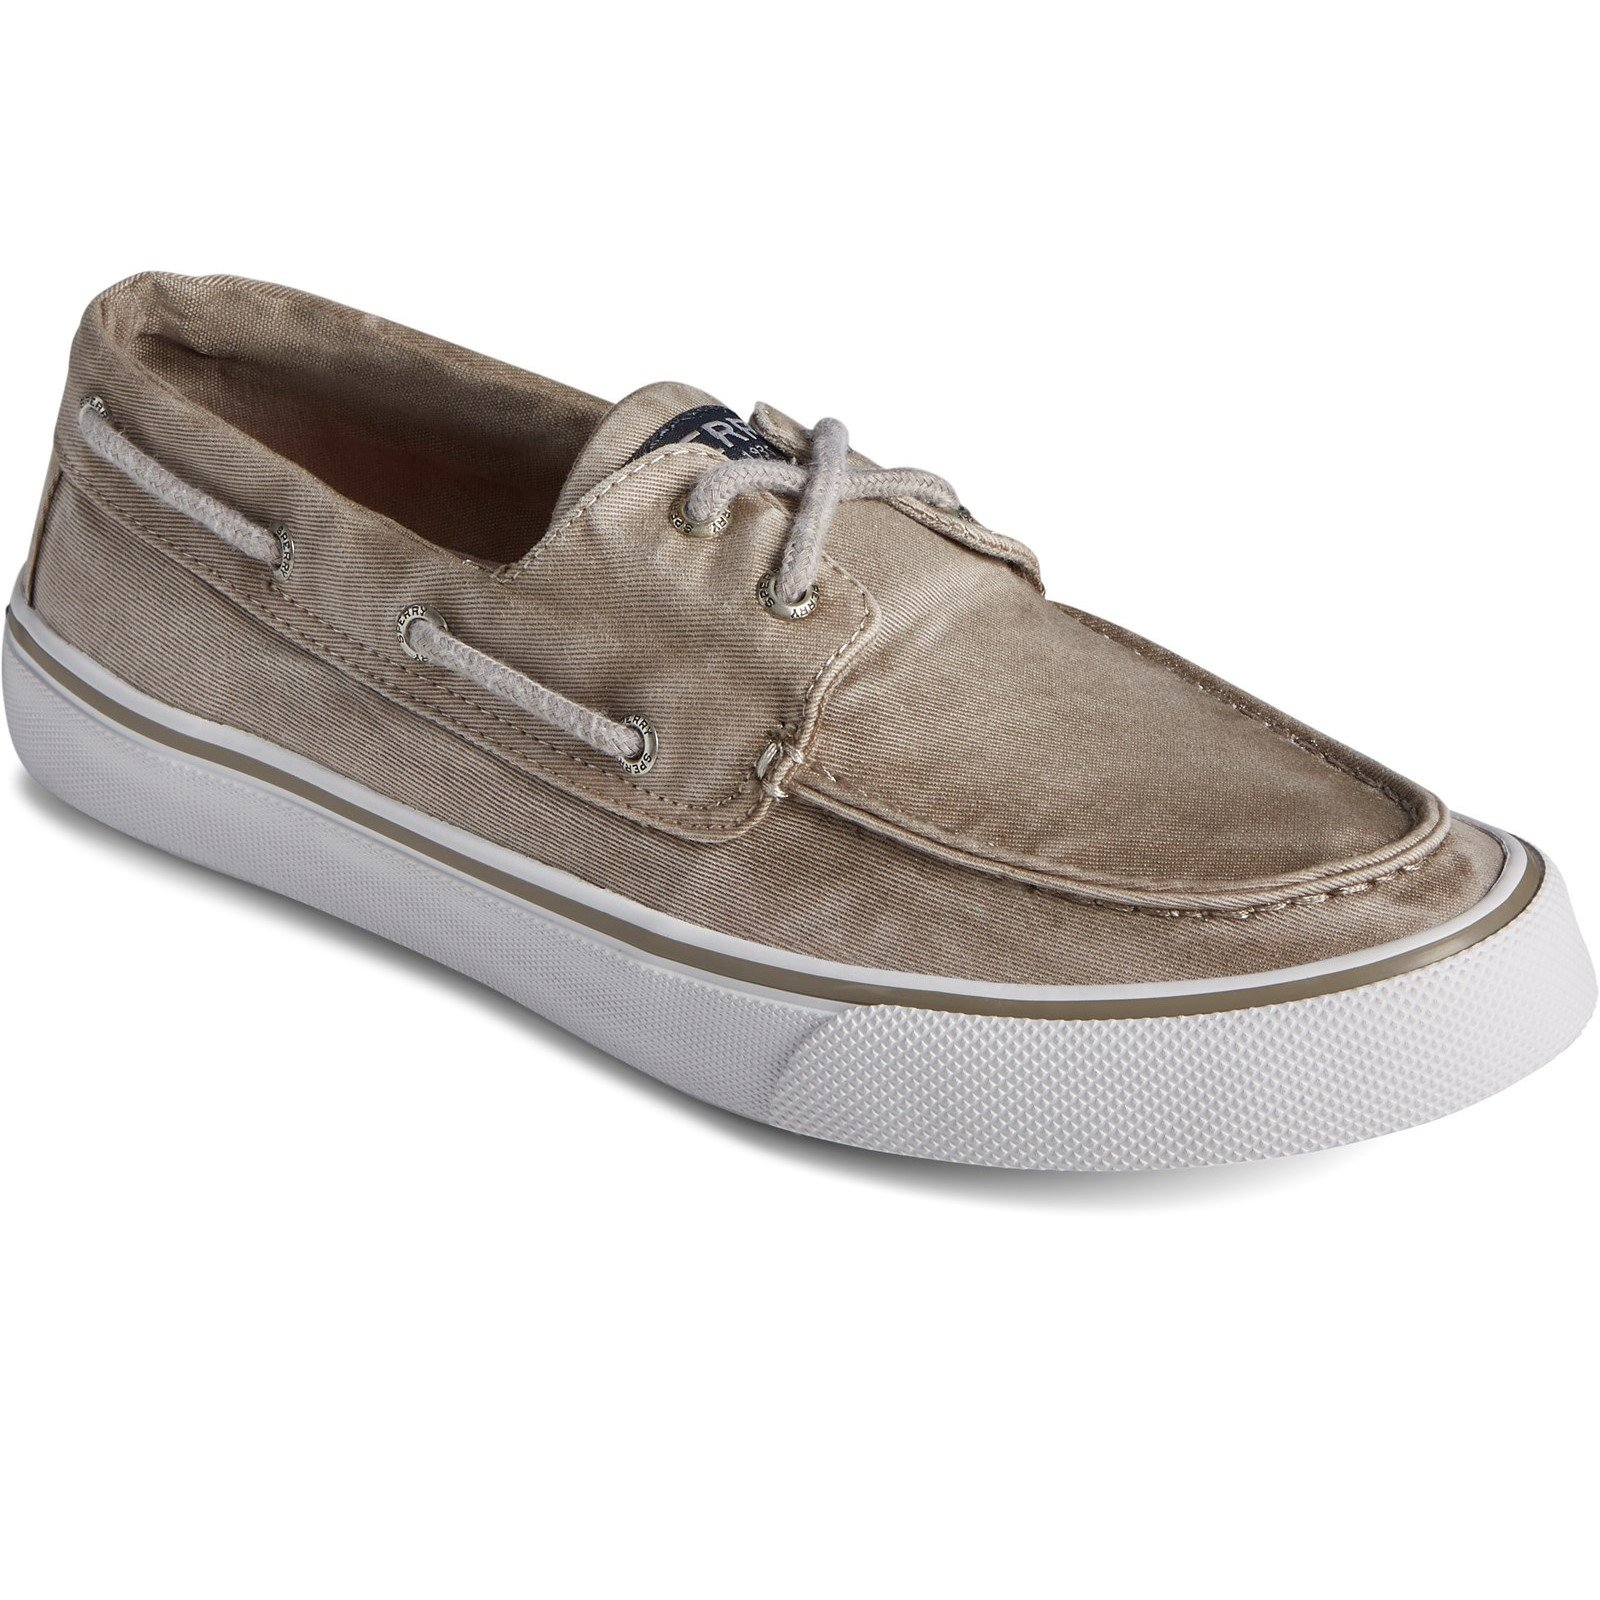 Sperry Men's Bahama II Boat Shoe Various Colours 32923 - Taupe 7.5